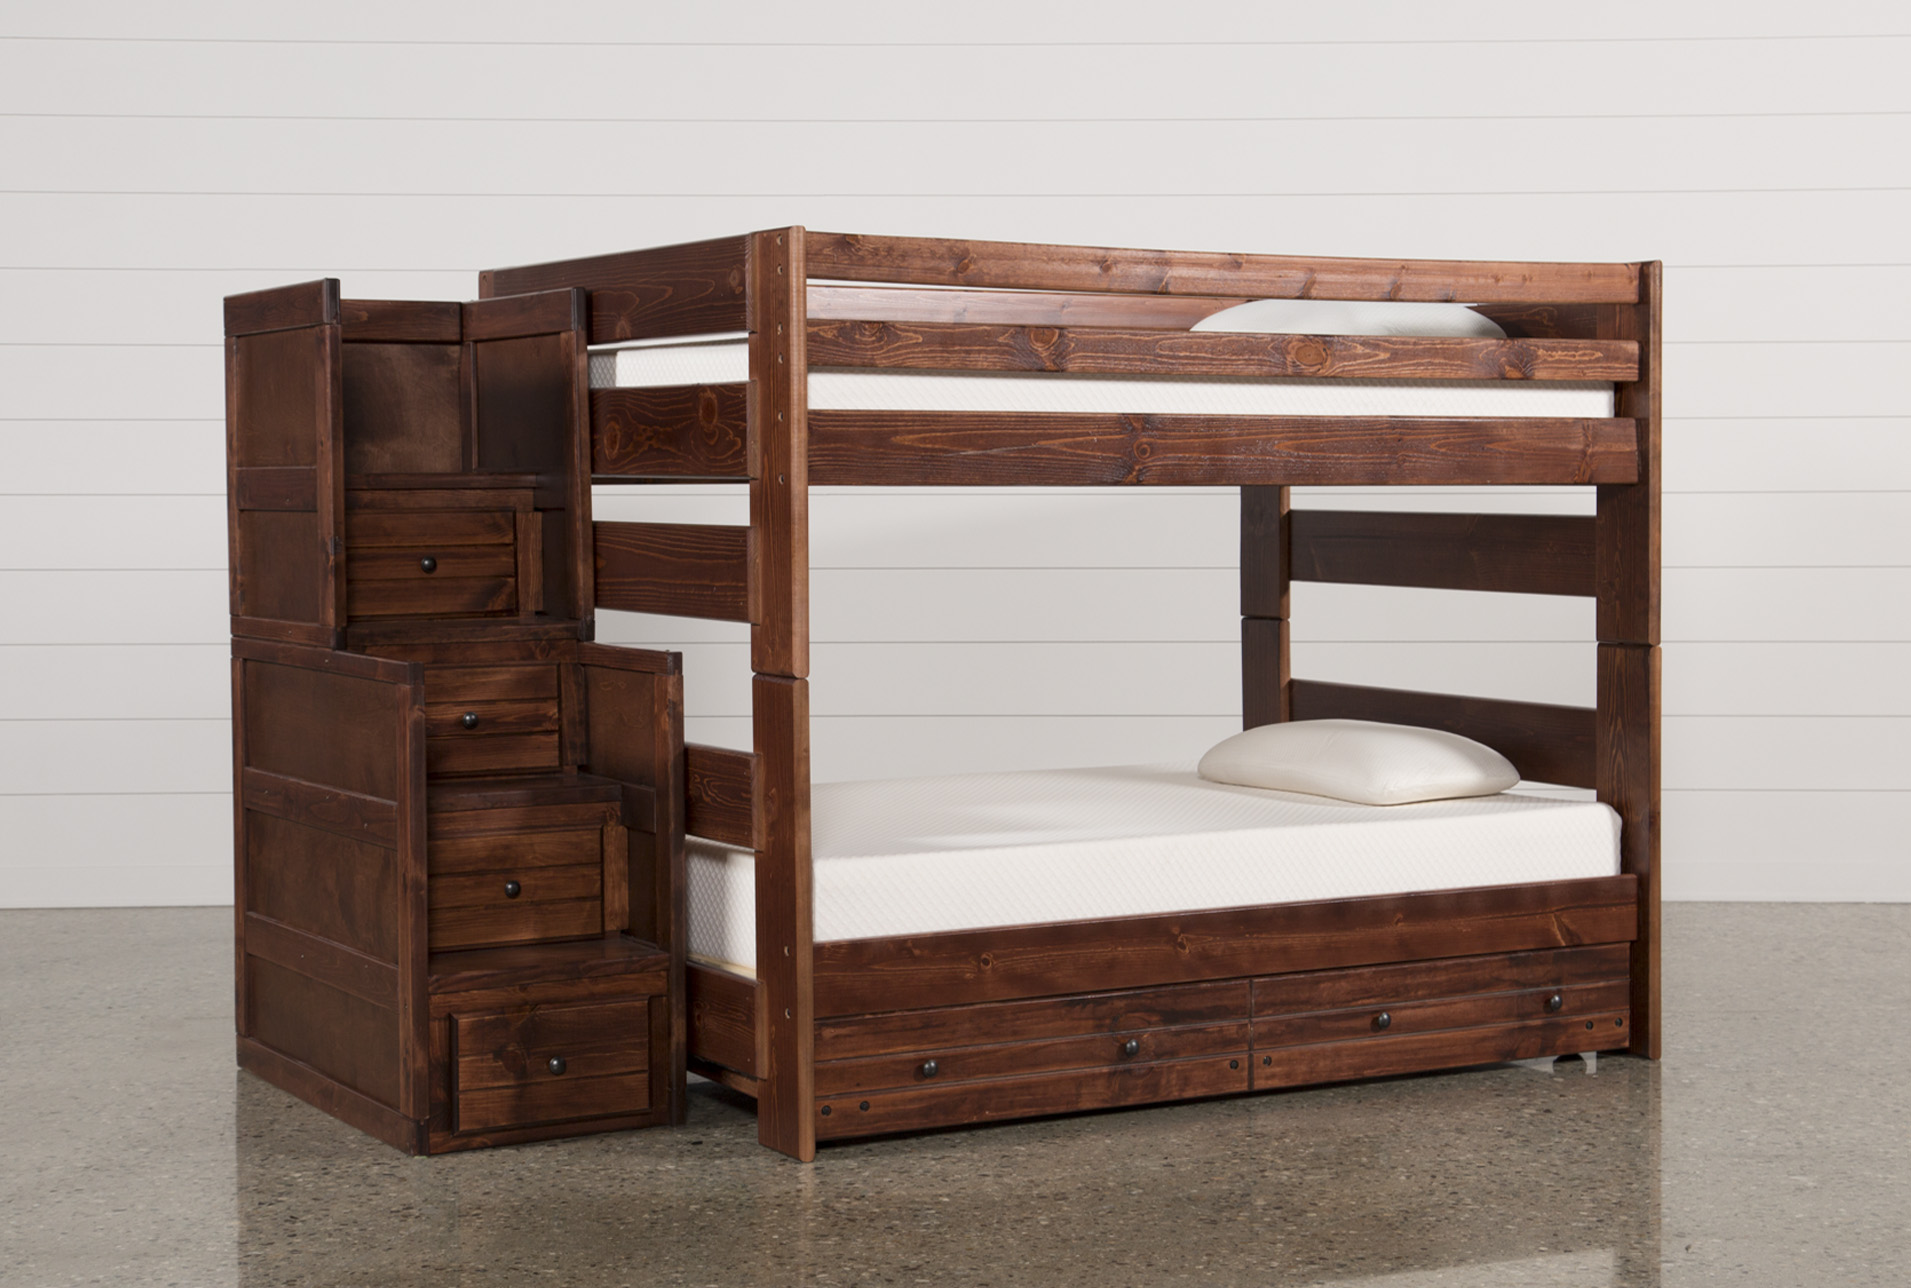 Sedona Full Over Full Bunk Bed With TrundleMattress Stair Chest